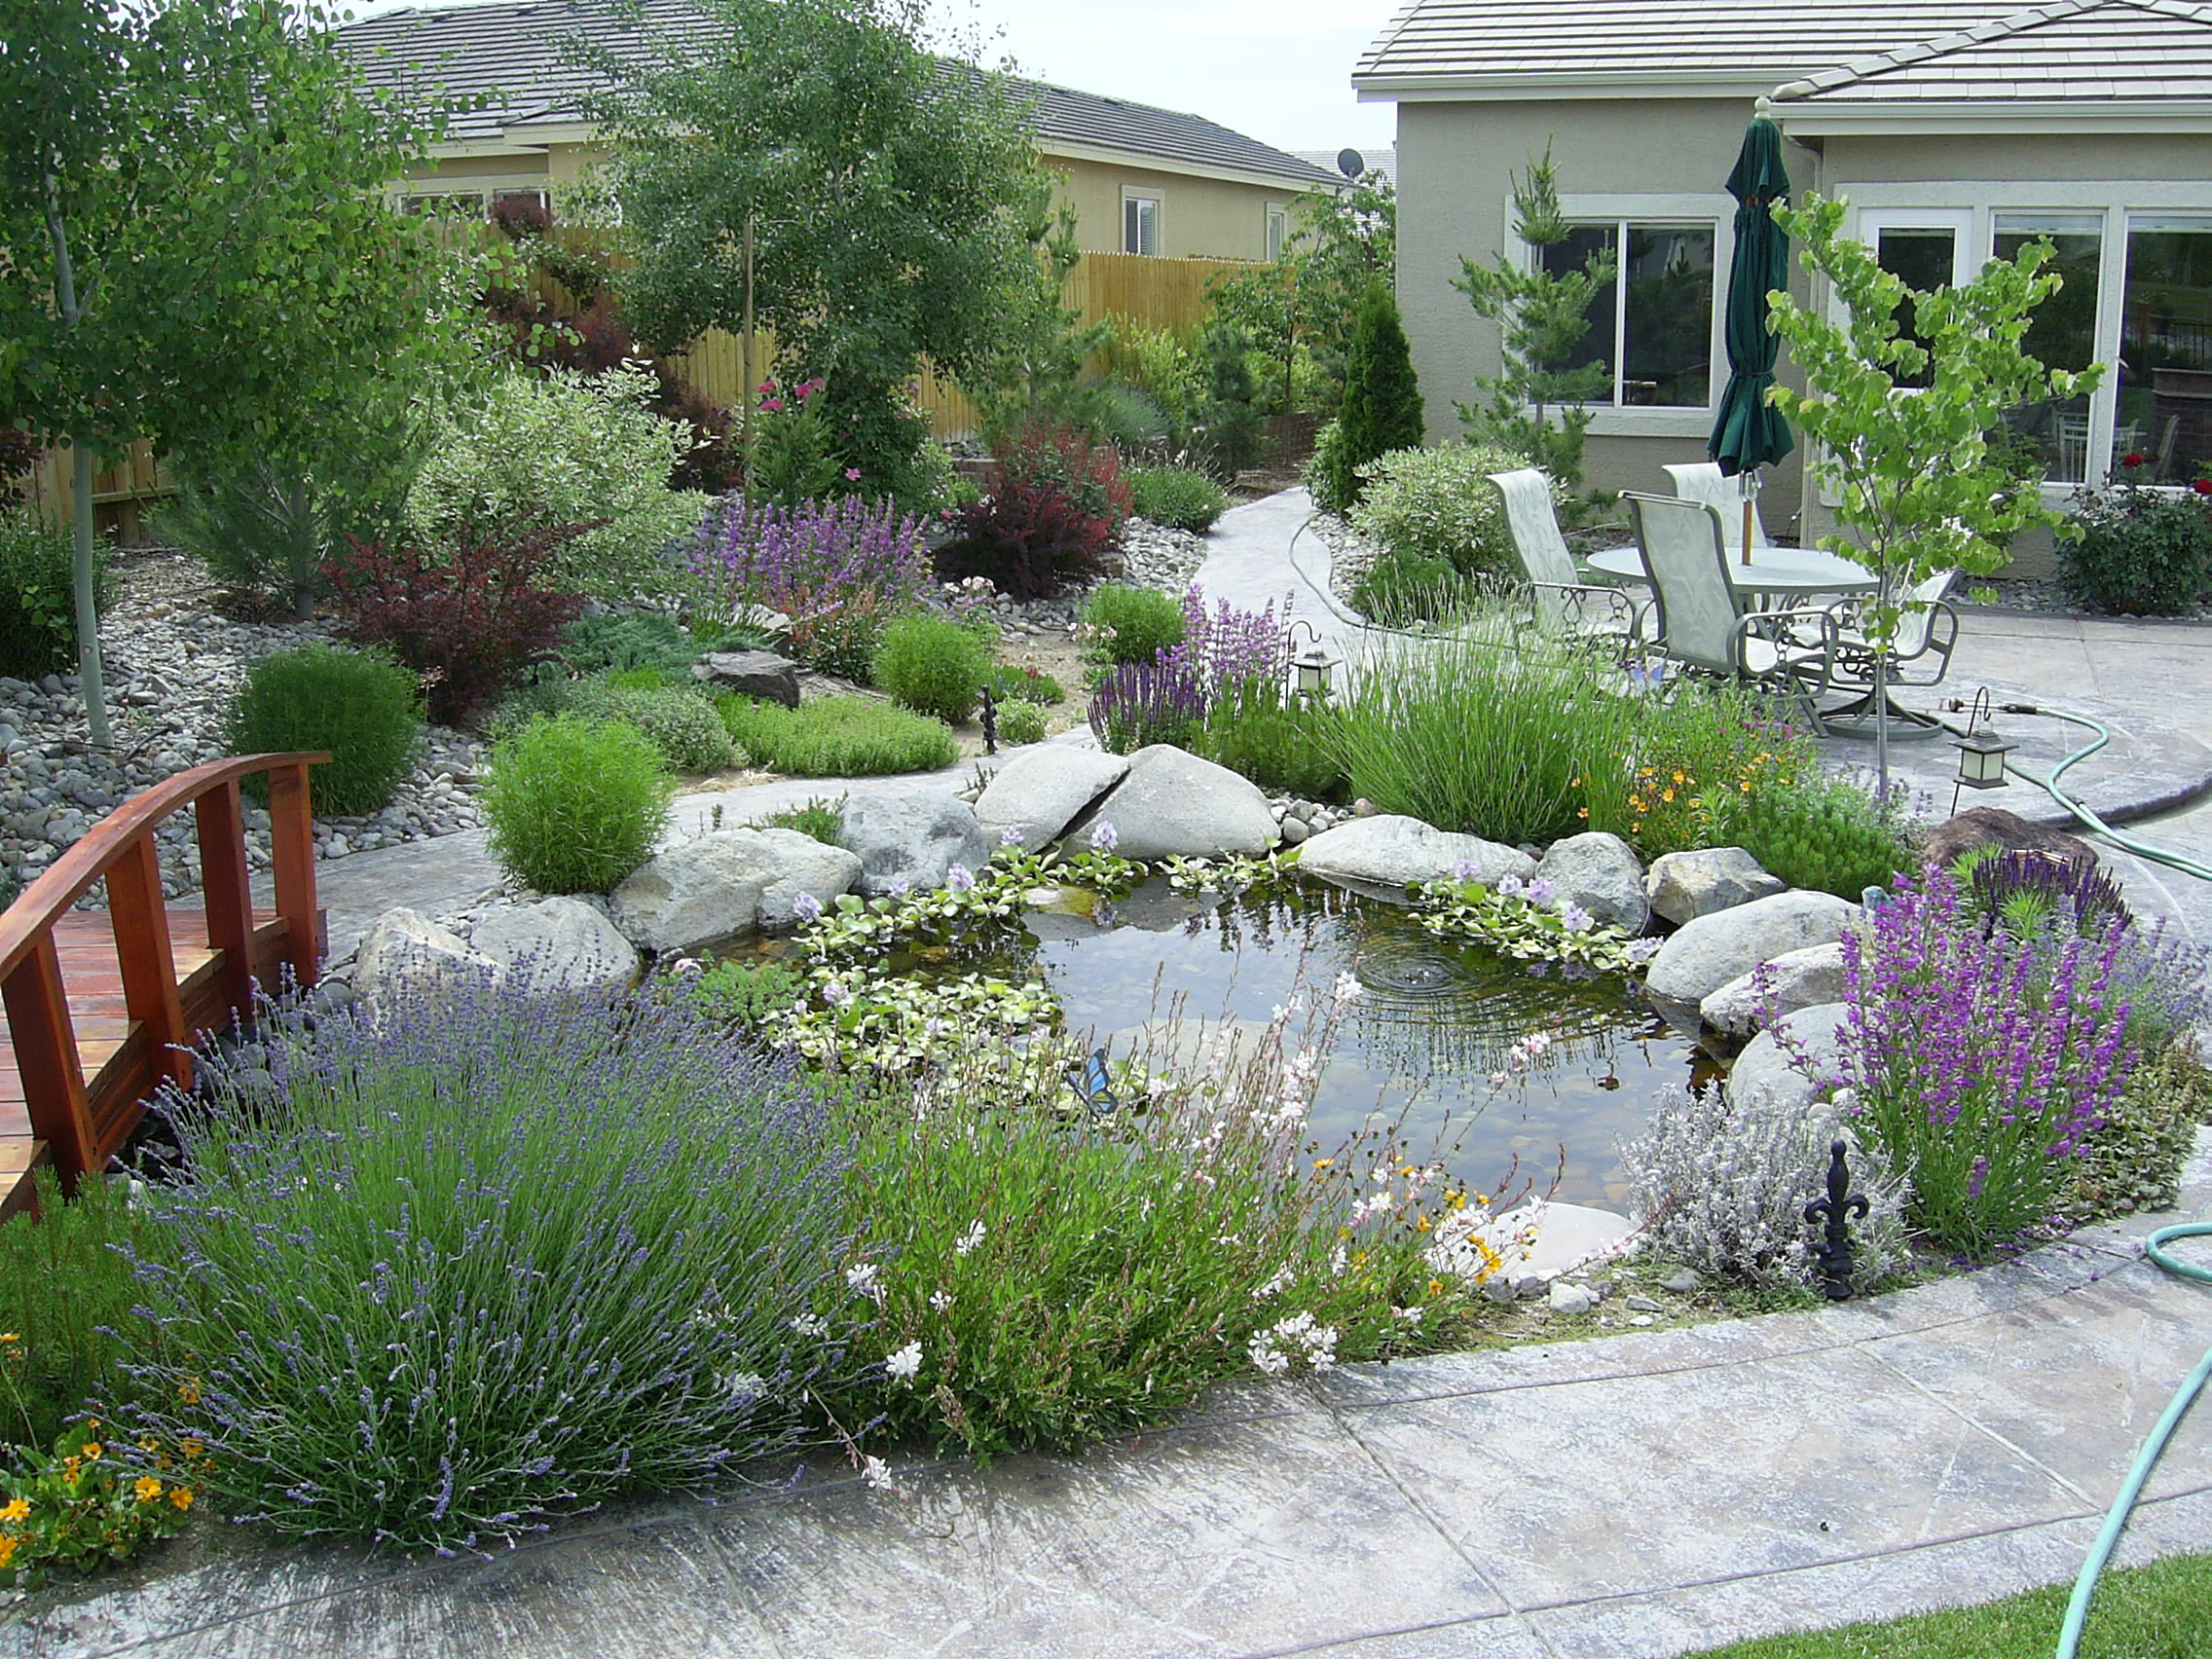 Landscape and garden design implications of water for Garden and design